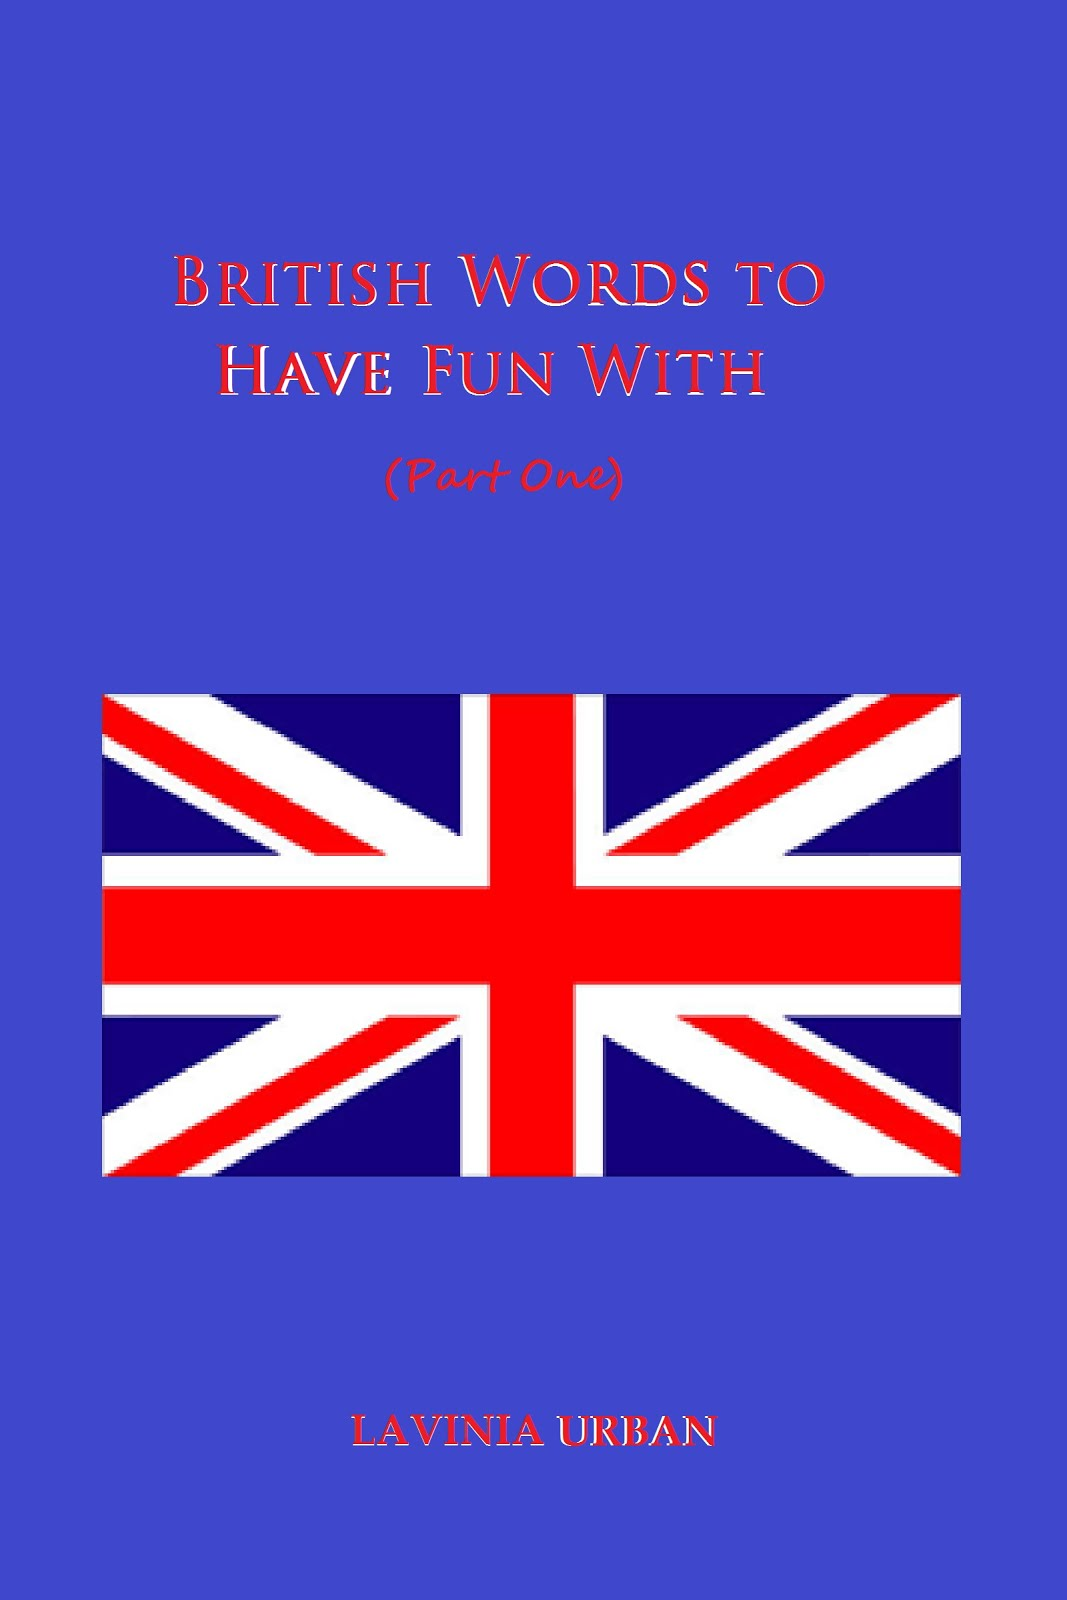 British Words to Have Fun With